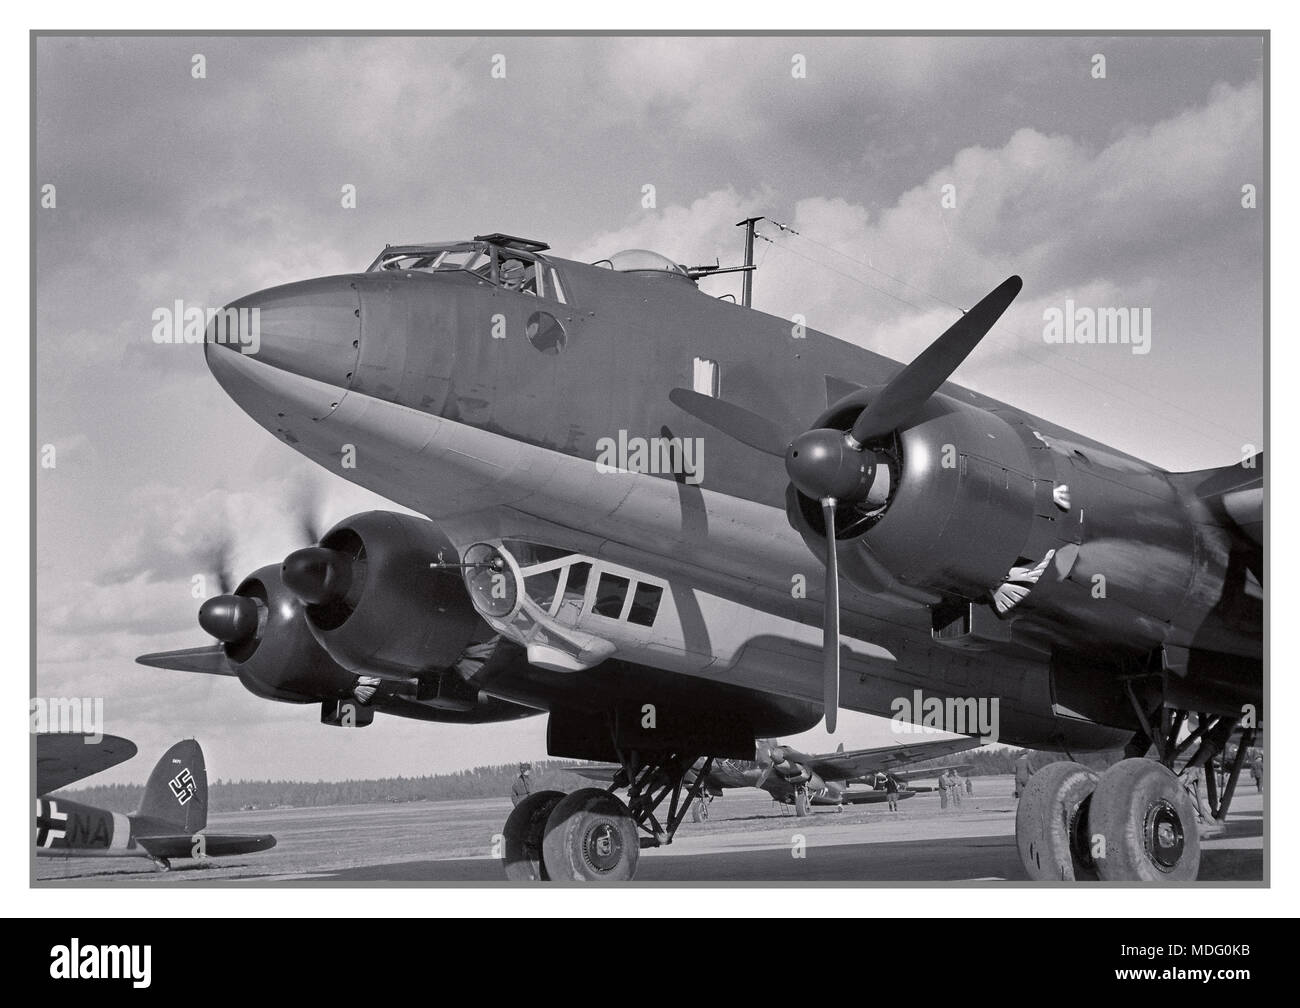 Adolf Hitler's Focke-Wulf Fw 200 Condor with fighter escort at Immola Airport during his visit to see Marshal Mannerheim 4 June 1942 in Finland - Stock Image